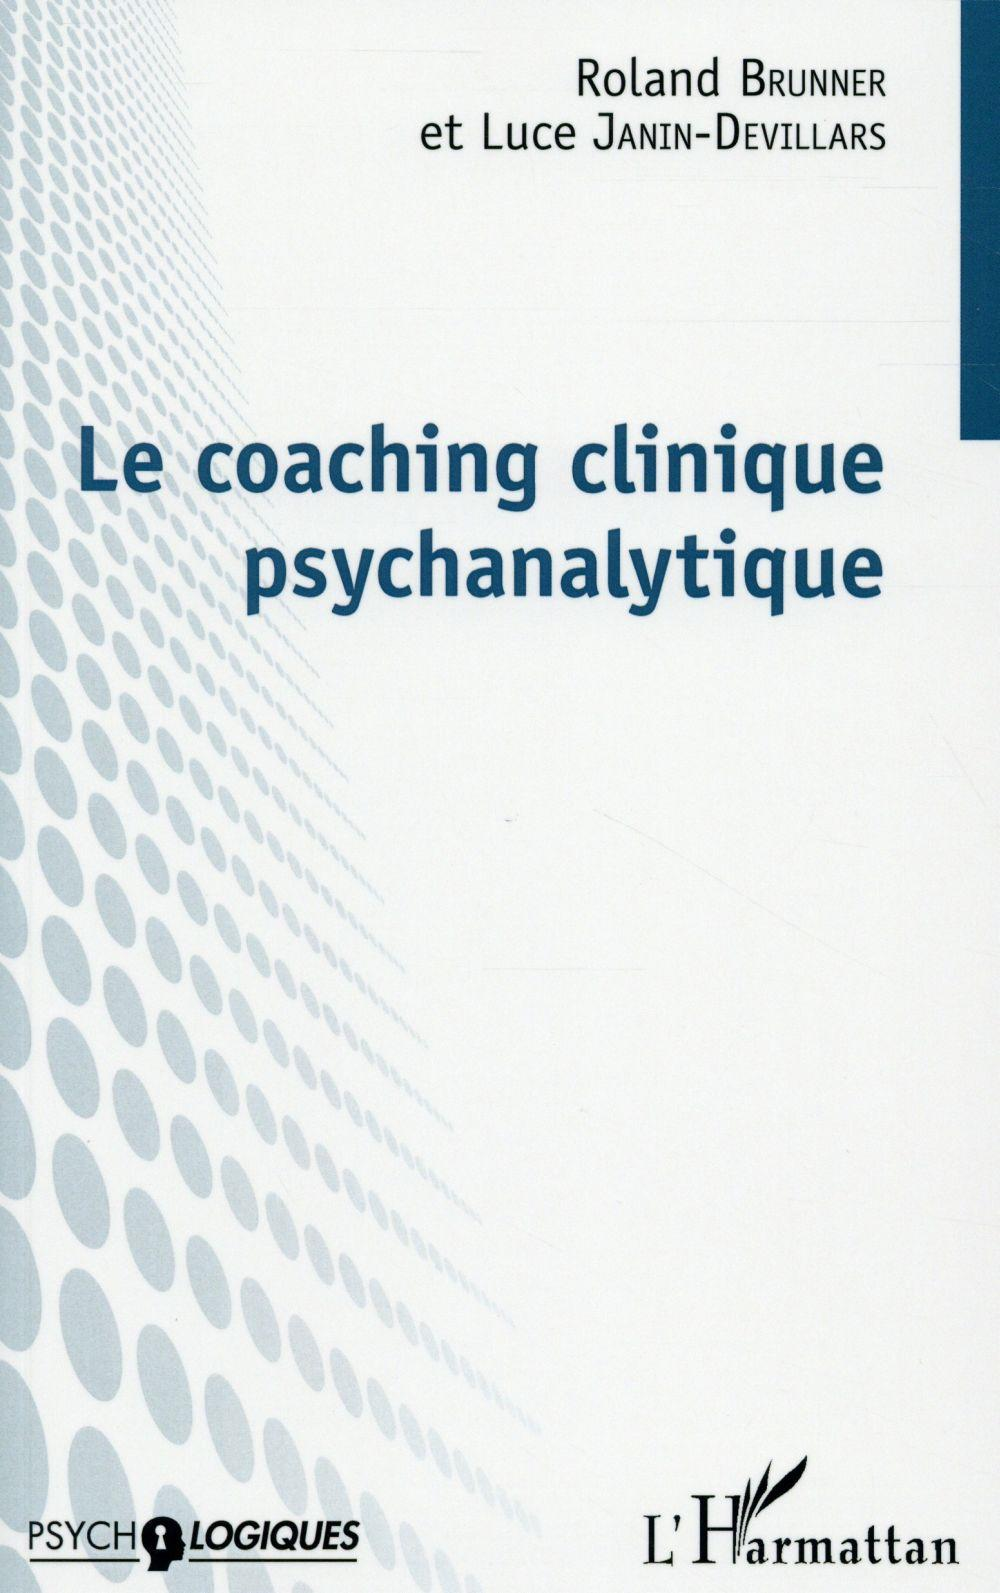 Le coaching clinique psychanalytique  - Roland Brunner  - Luce Janin-Devillars